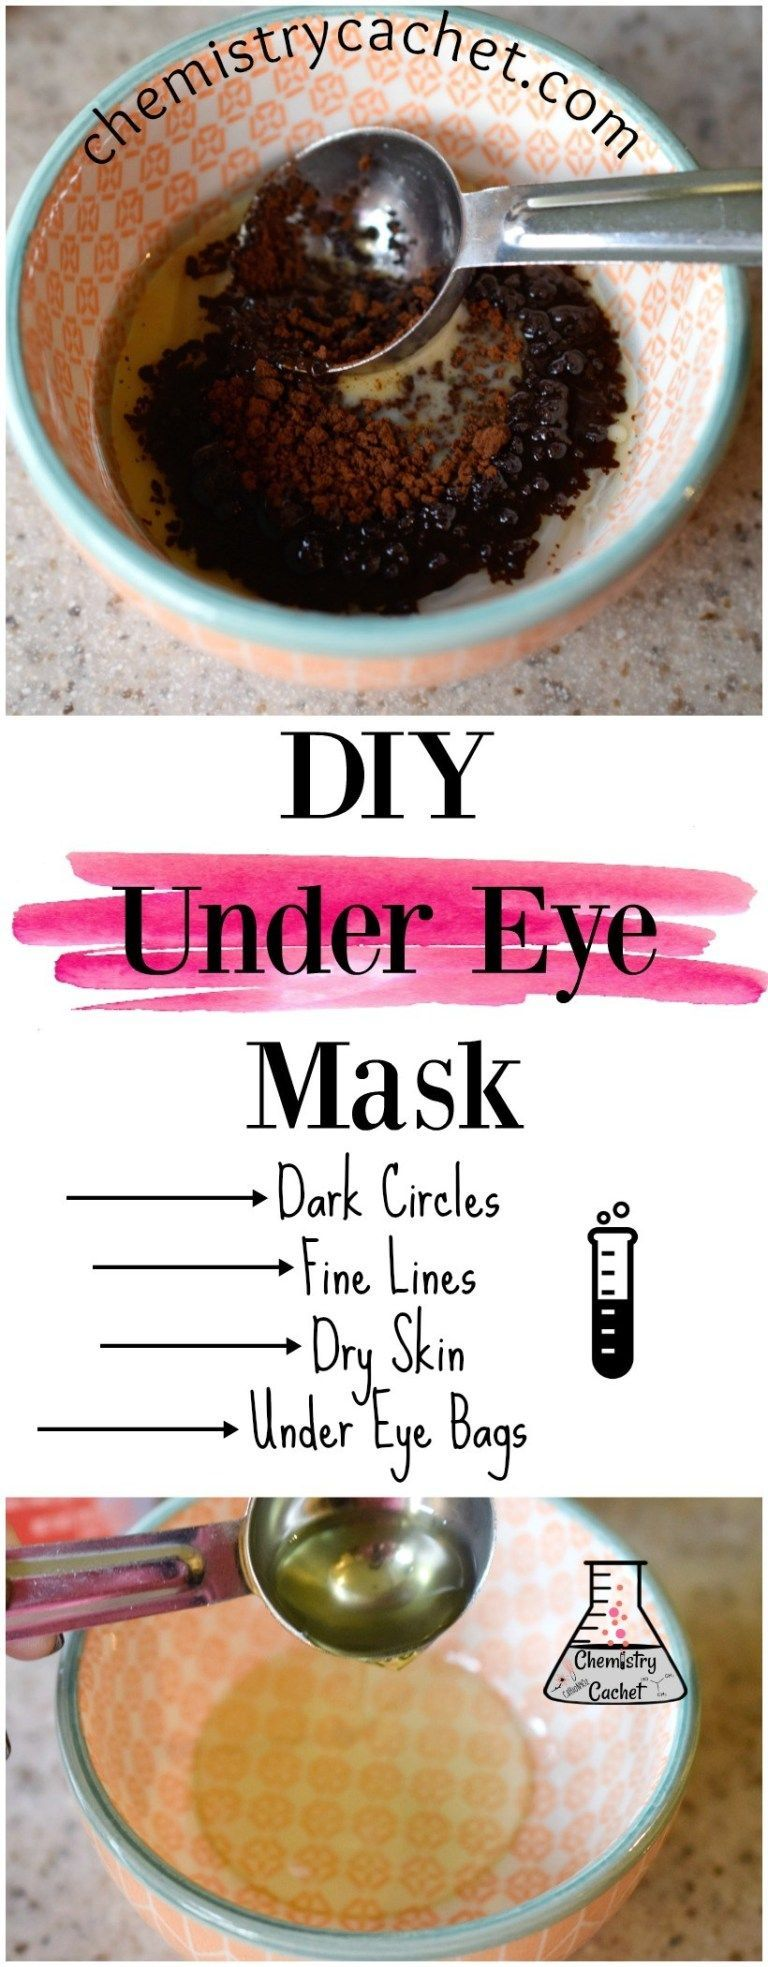 DIY Under Eye Mask for Dark Circles, Under Eye Bags, and Fine Lines #darkcircle